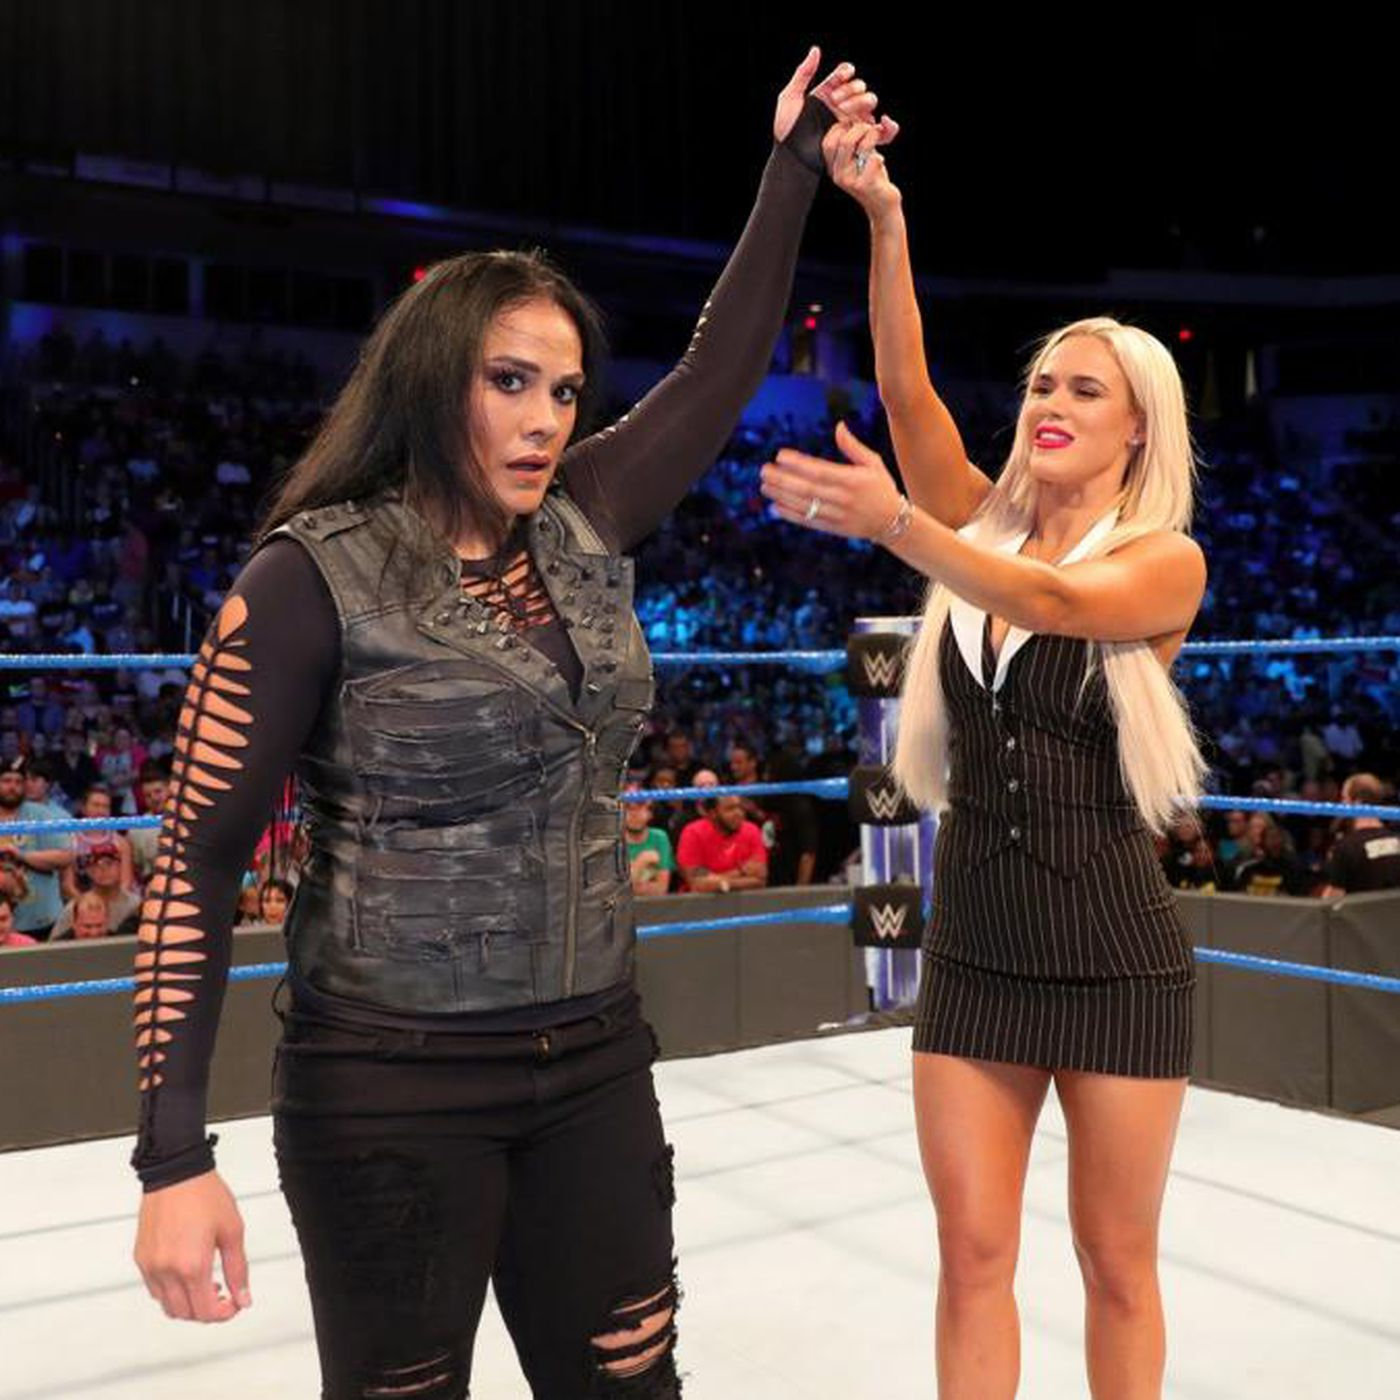 Tamina Snuka reportedly sidelined after shoulder surgery - Cageside Seats